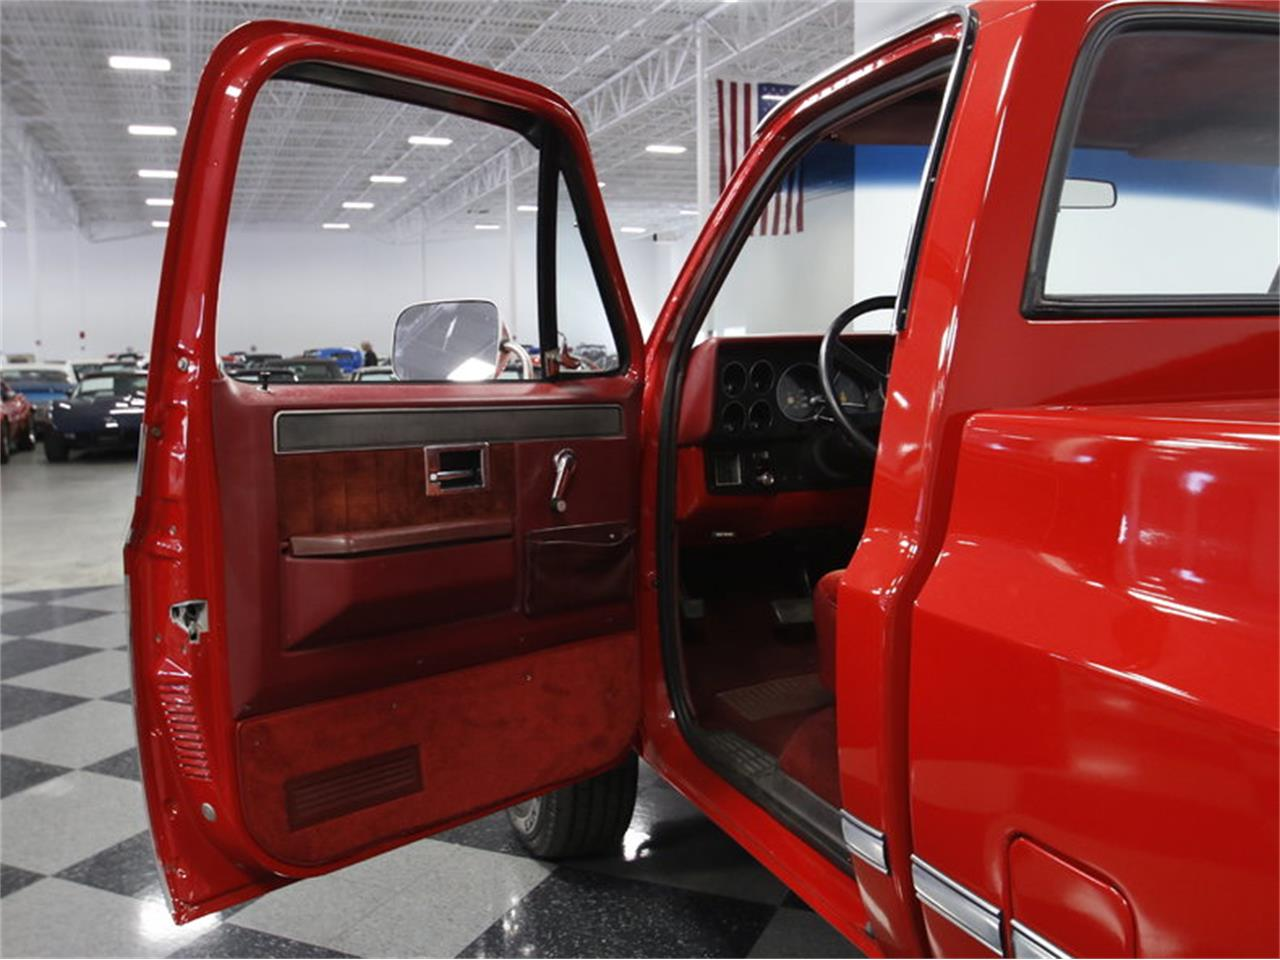 Large Picture of '85 Chevrolet K-10 located in North Carolina - $26,995.00 Offered by Streetside Classics - Charlotte - LS4D